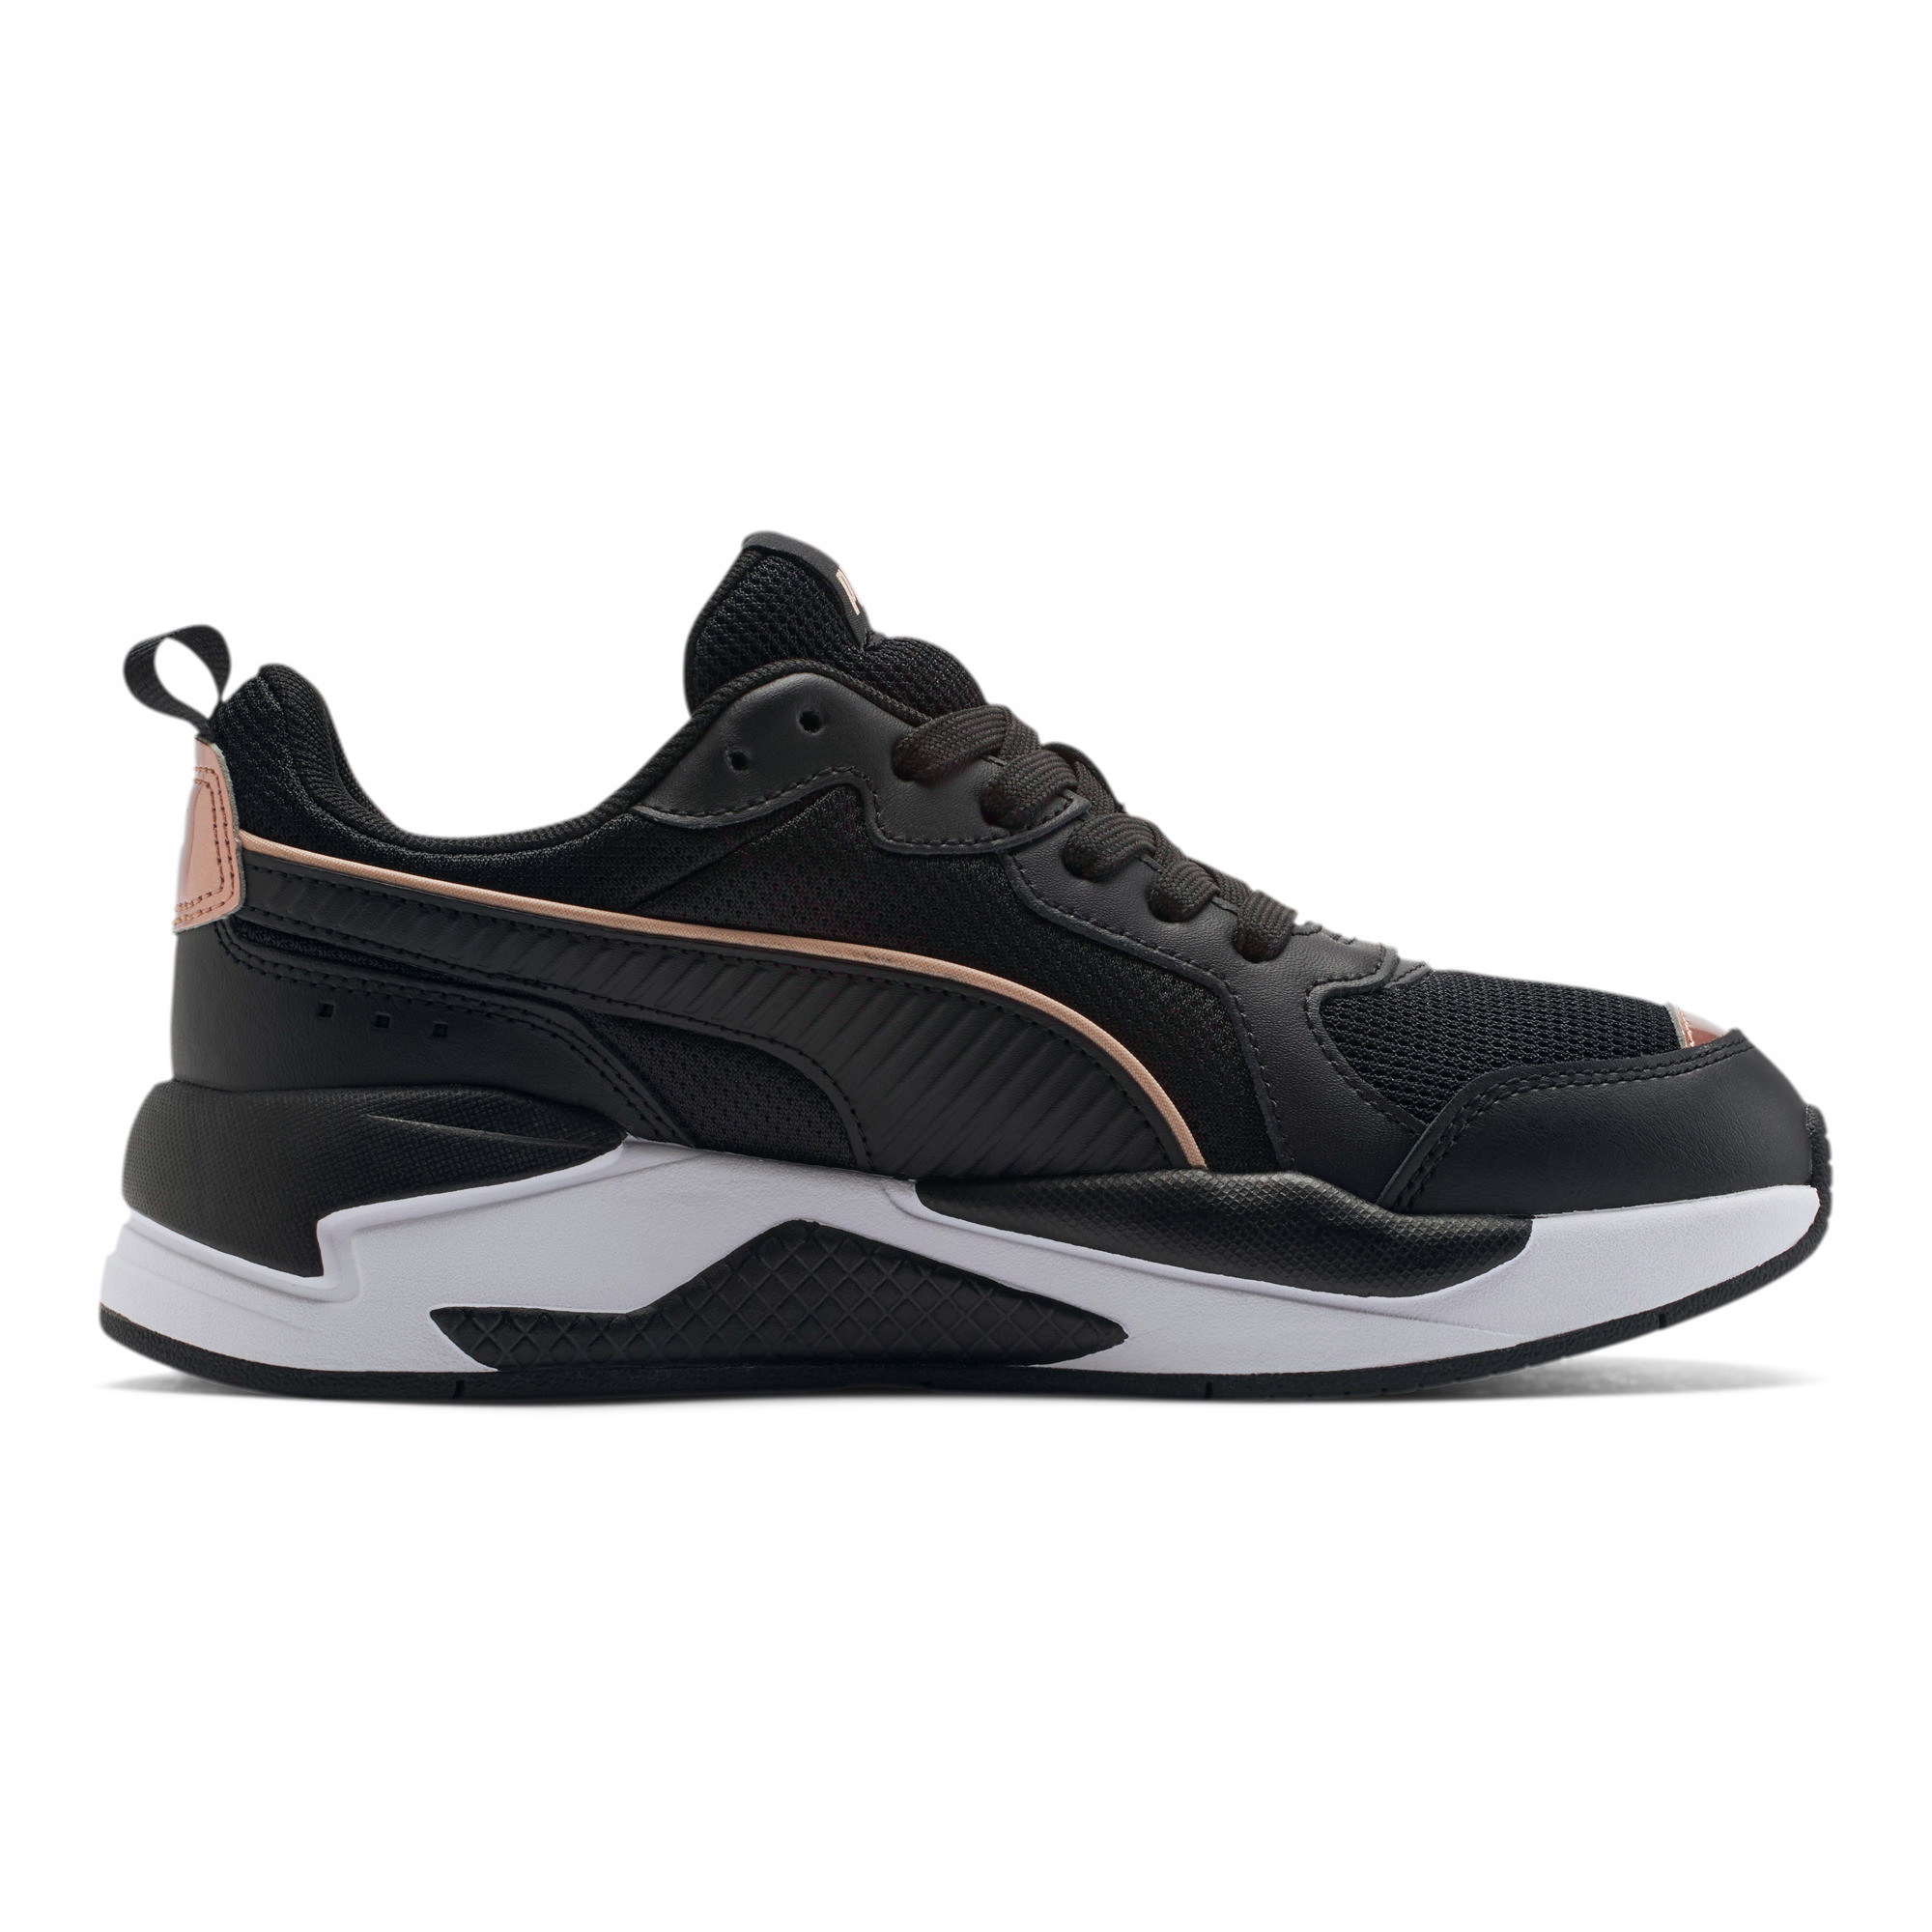 PUMA-X-RAY-Metallic-Shine-Women-039-s-Sneakers-Women-Shoe-Basics thumbnail 6